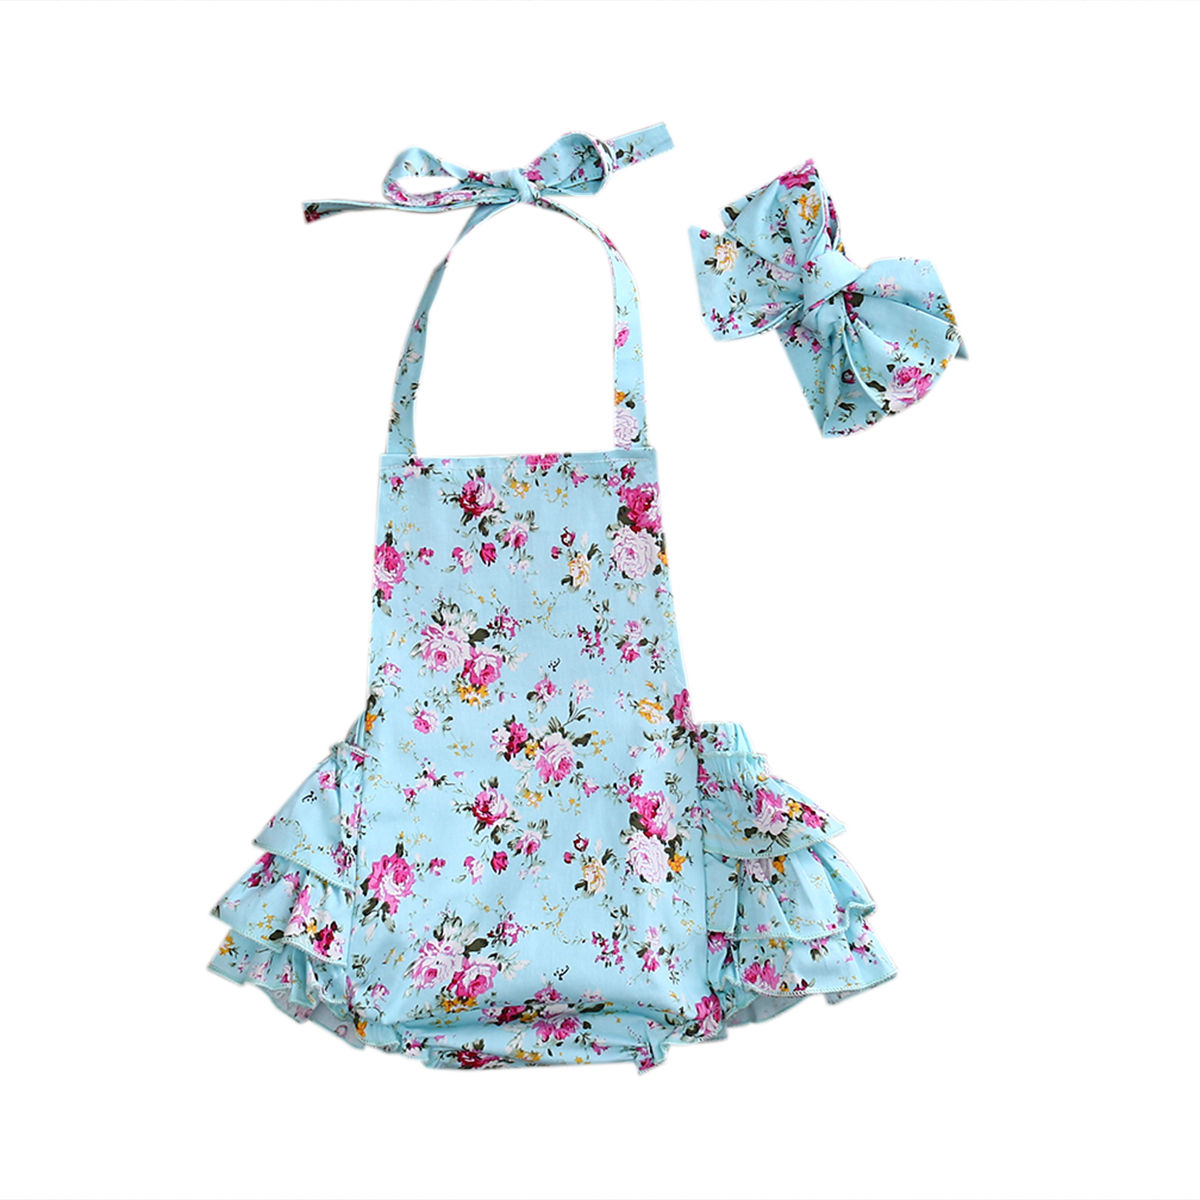 Summer Newborn Infant Baby Girls Floral Tiered Romper Jumpsuit Outfit Sunsuit Playsuit Belt Cotton Clothes cute newborn baby girls clothes floral infant bebes romper cotton jumpsuit one pieces outfit sunsuit 0 18m